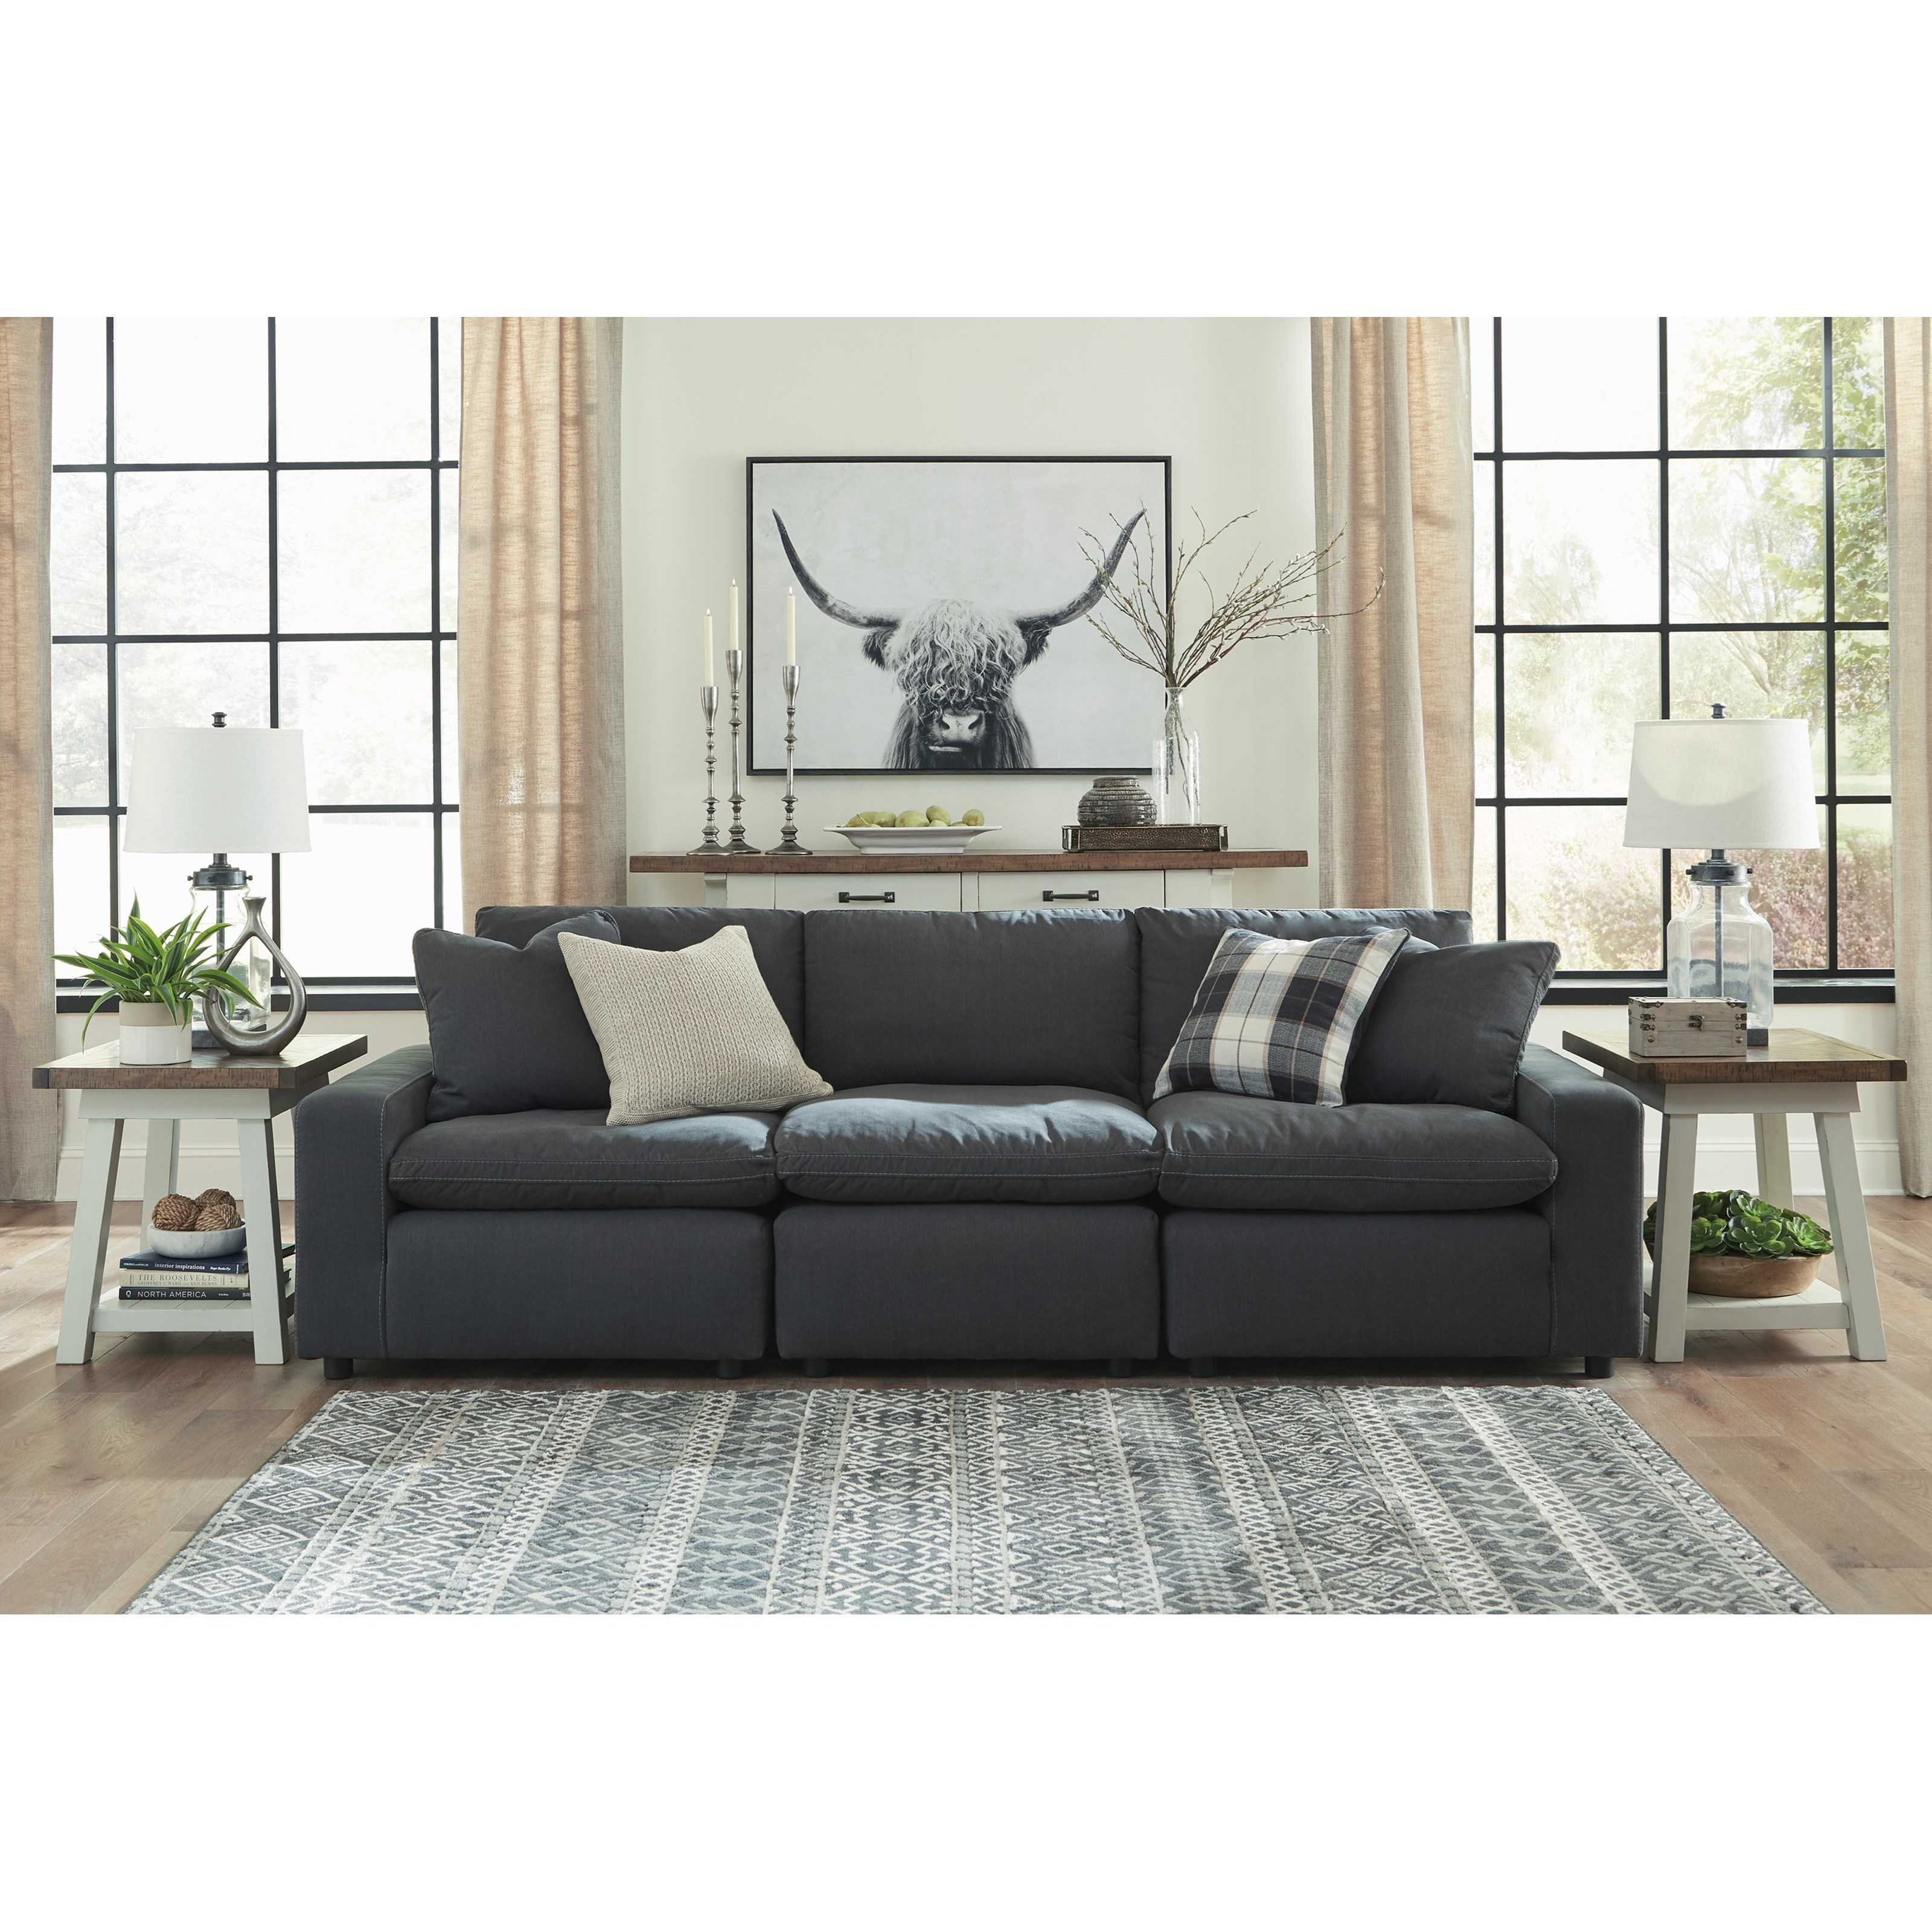 Savesto Sofa by Signature Design by Ashley at Northeast Factory Direct